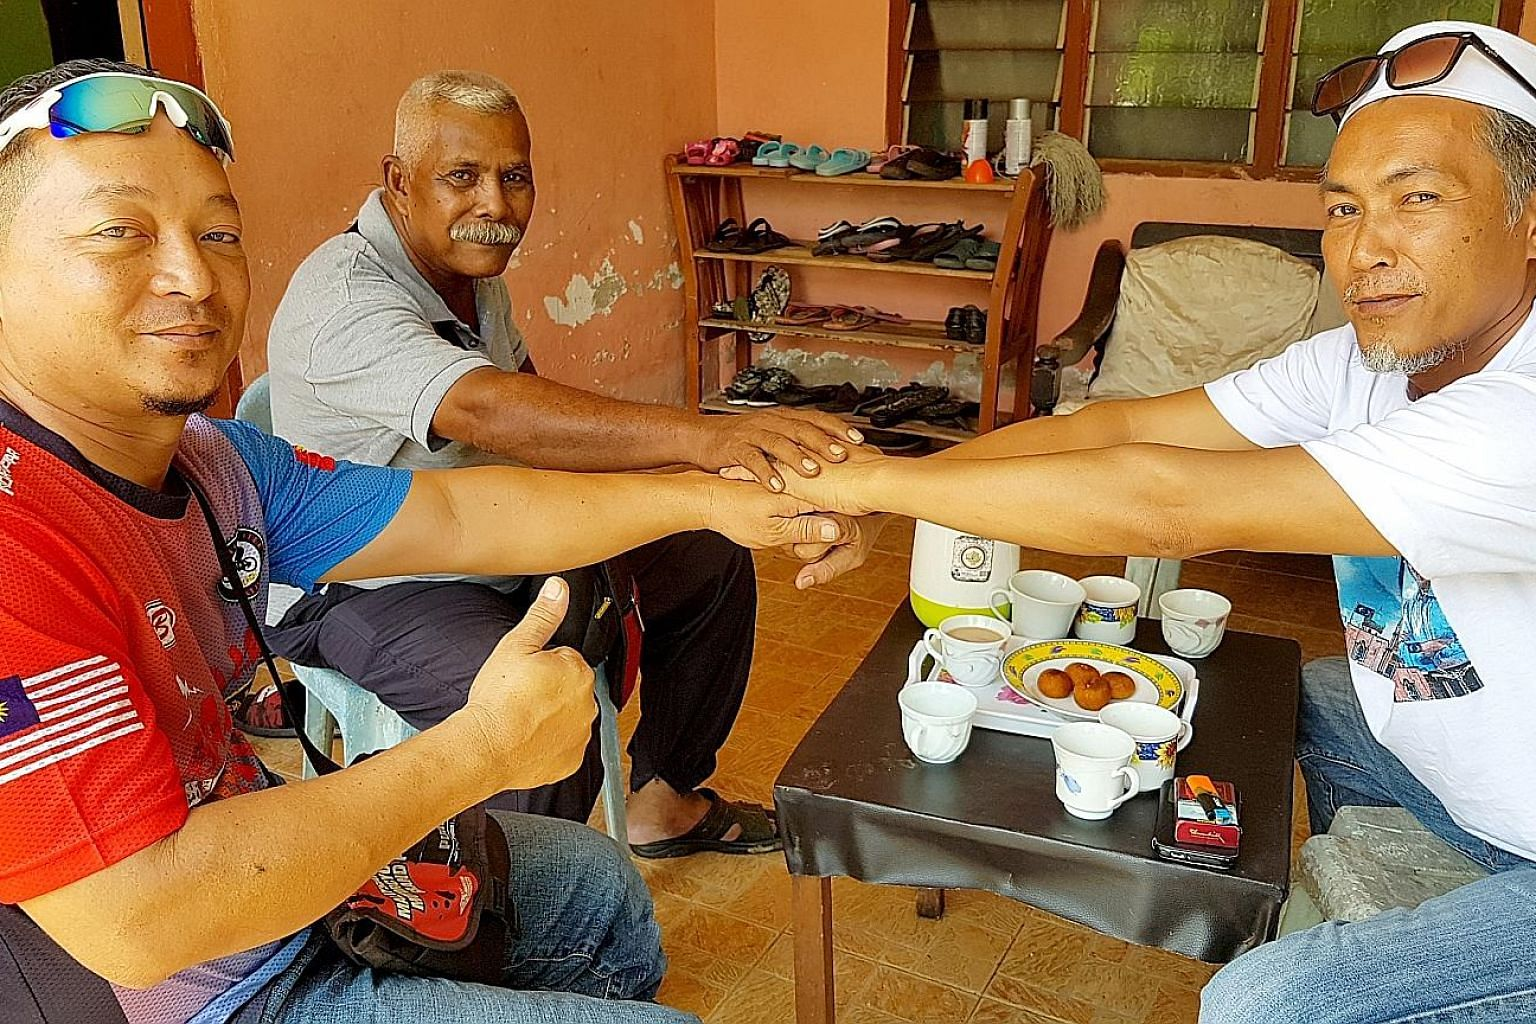 Friends (from far right) Ahmad Tarmizi Din, Bahadun Salim and Effendi Yakob, who all voted for different parties in Wednesday's election, having breakfast together in Kedah yesterday. Supporters of Tun Dr Mahathir Mohamad cheering him outside the She